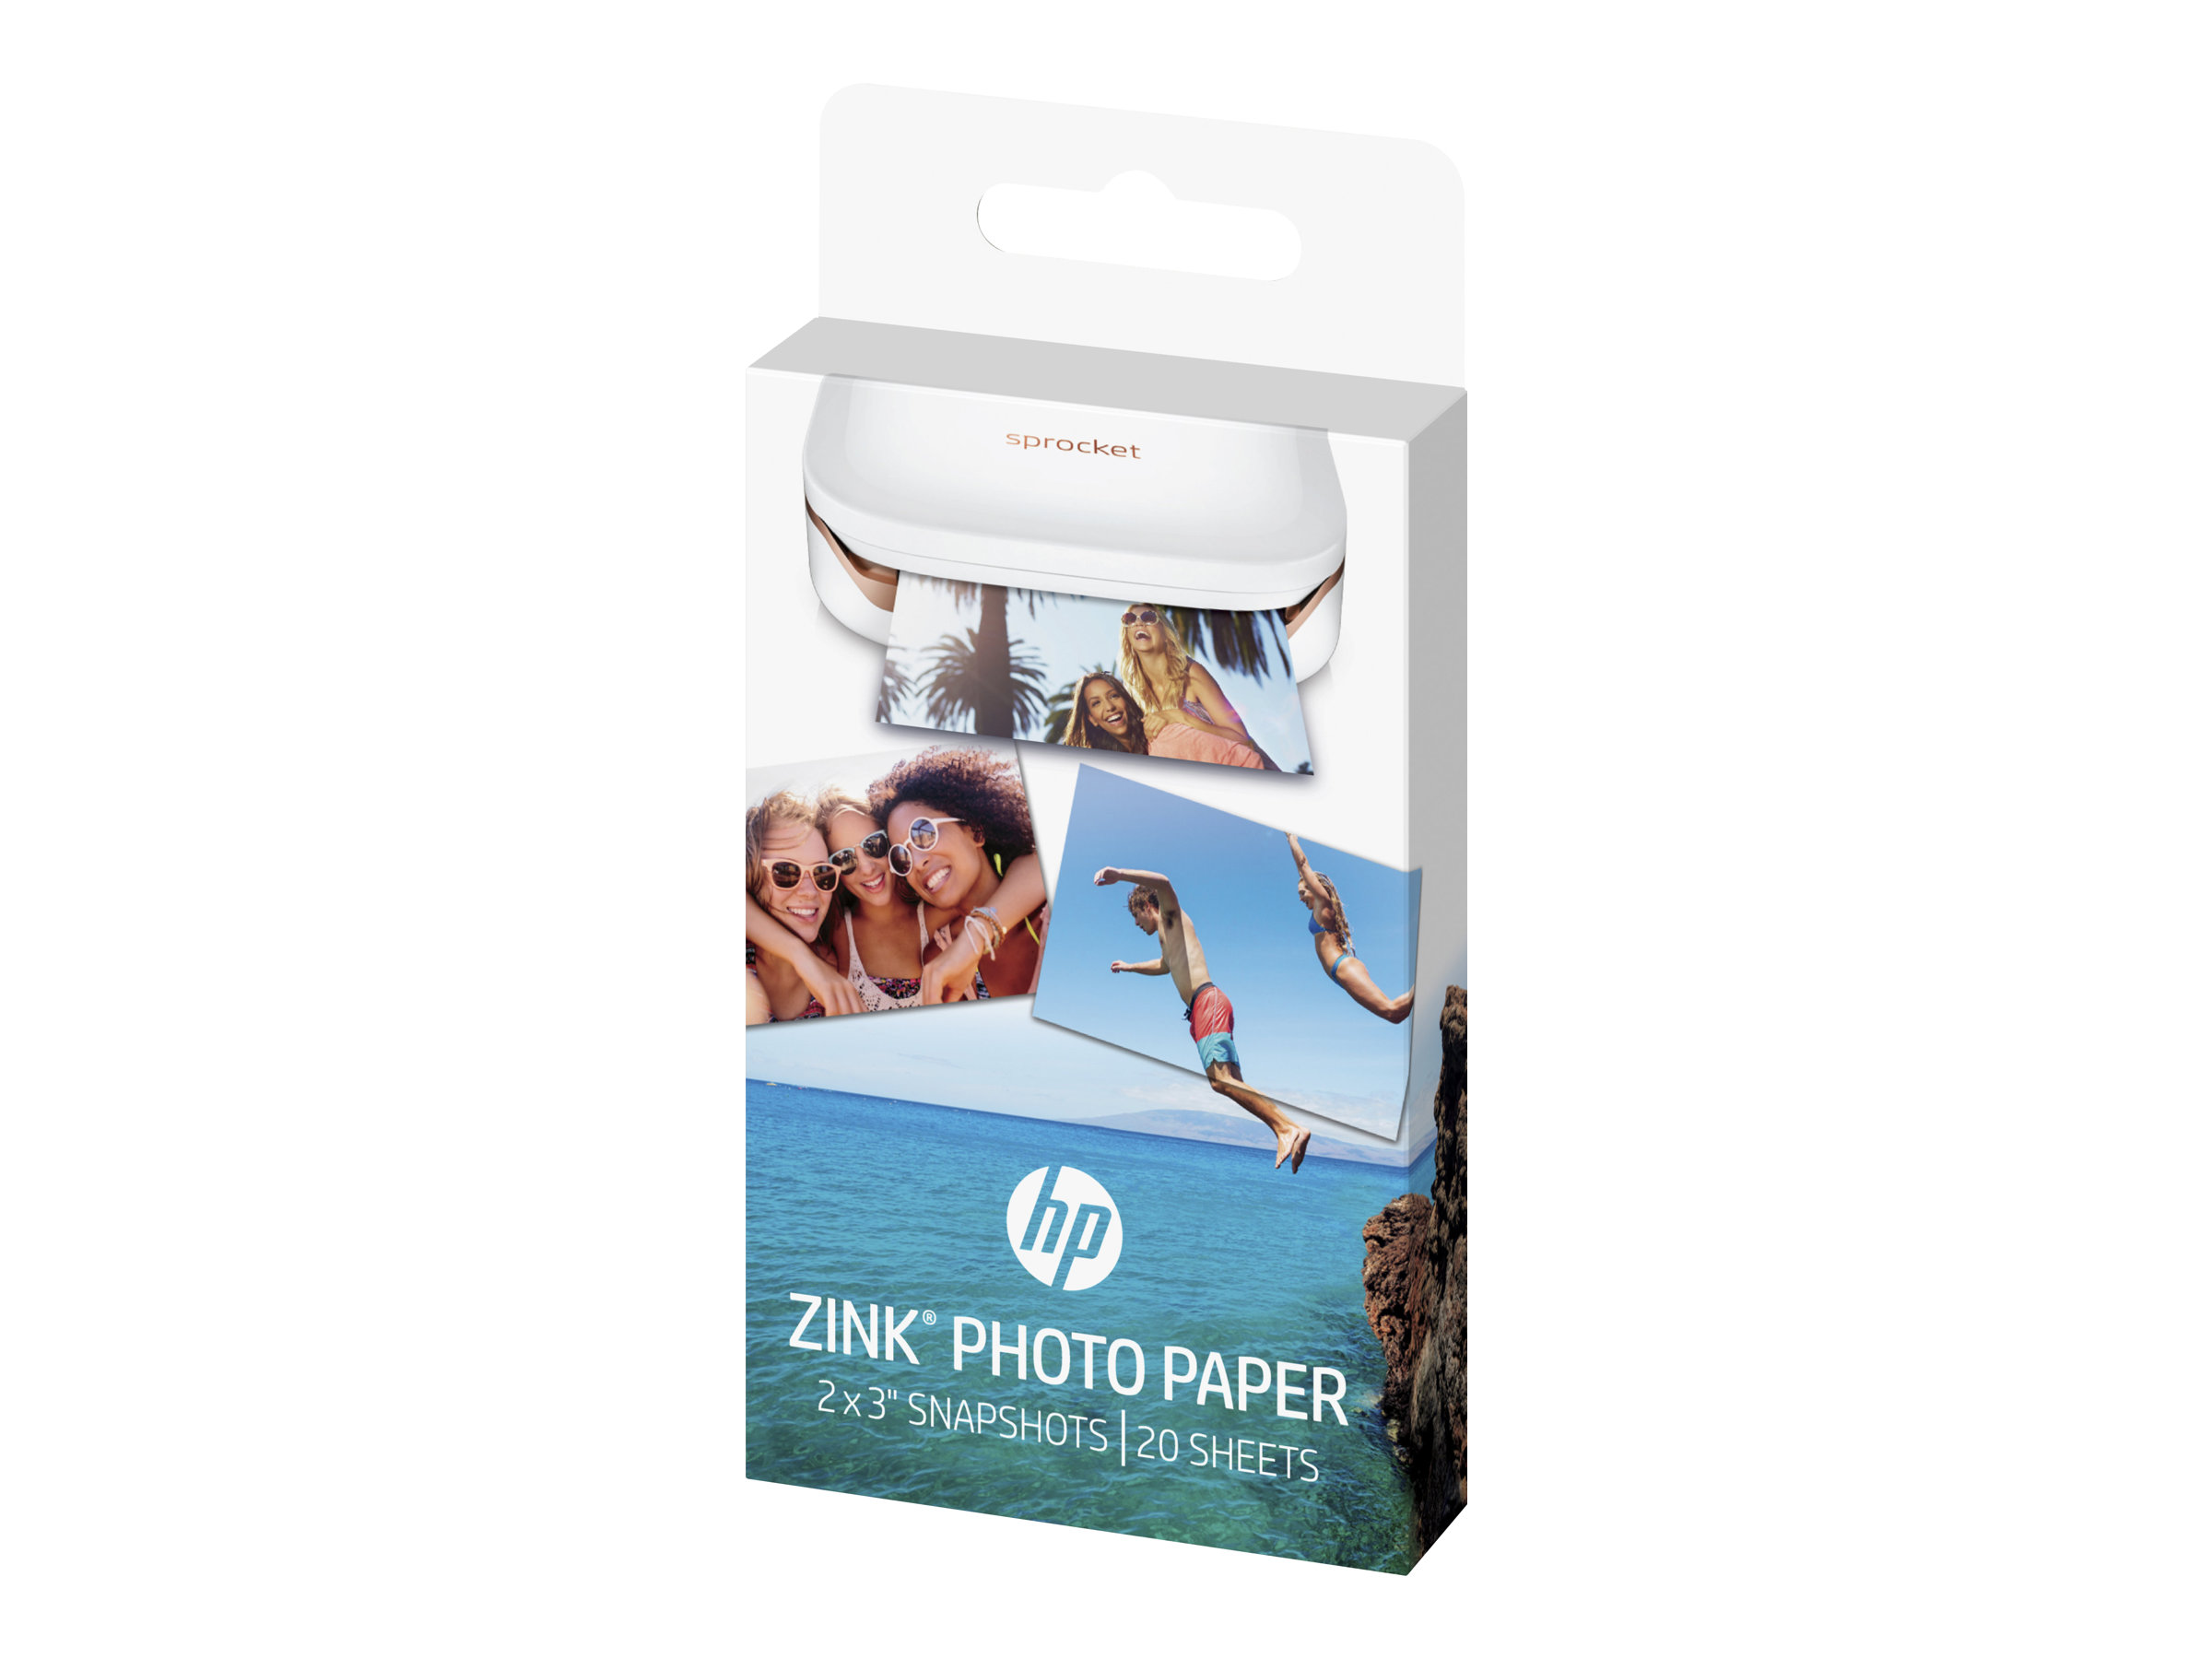 HP ZINK Sticky-Backed Photo Paper - Selbstklebend